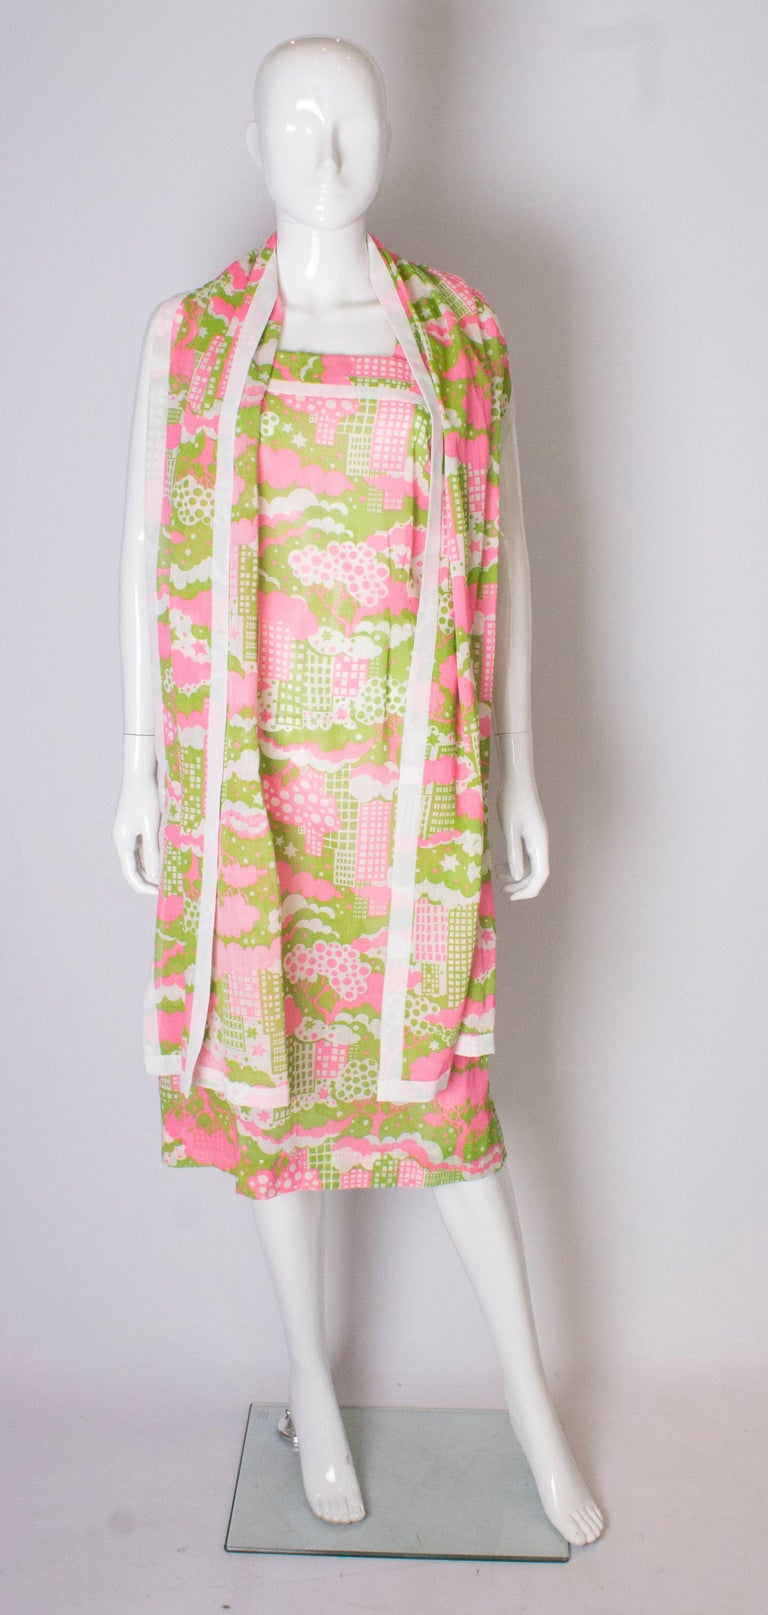 A fun abstract printed  sundress with matching scarf. The dress is a print of pink, white and sage green ,  with a white trim.  It has two straps and a central back zip. The scarf is the same fabric and measures 88'' x 18''.